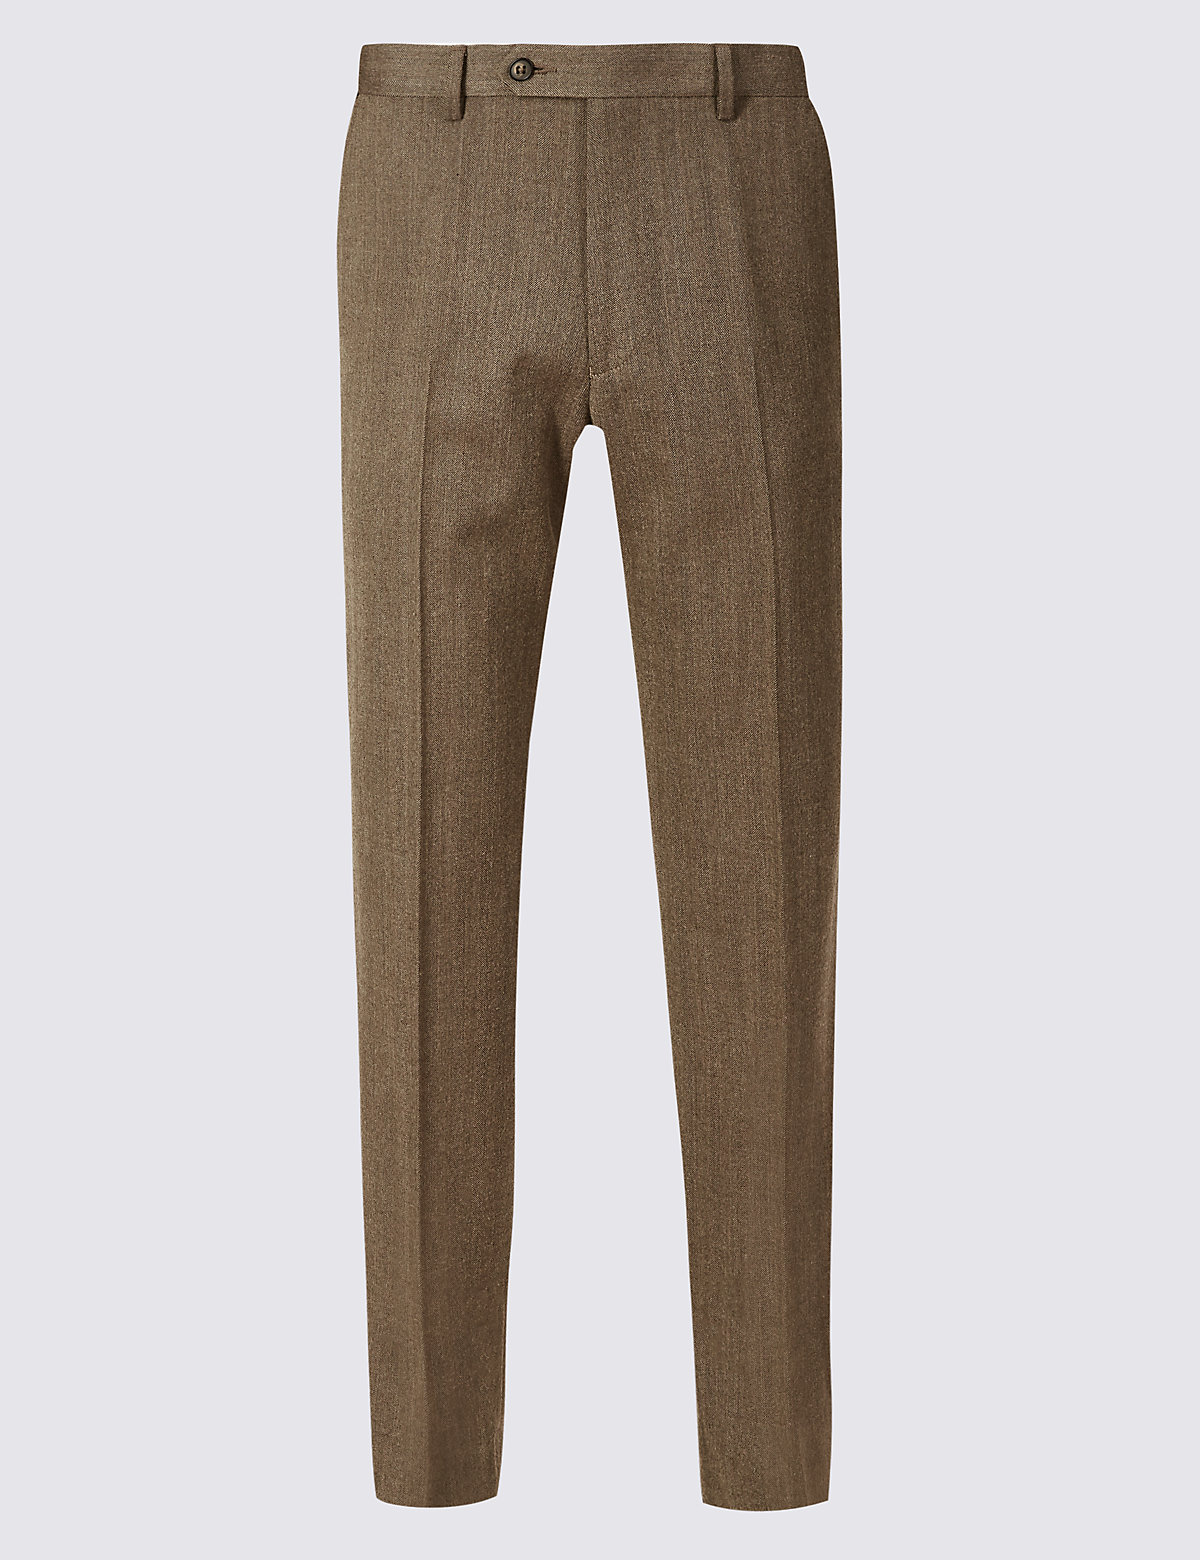 Marks & Spencer Neutral Regular Fit Wool Blend Flat Front Trousers